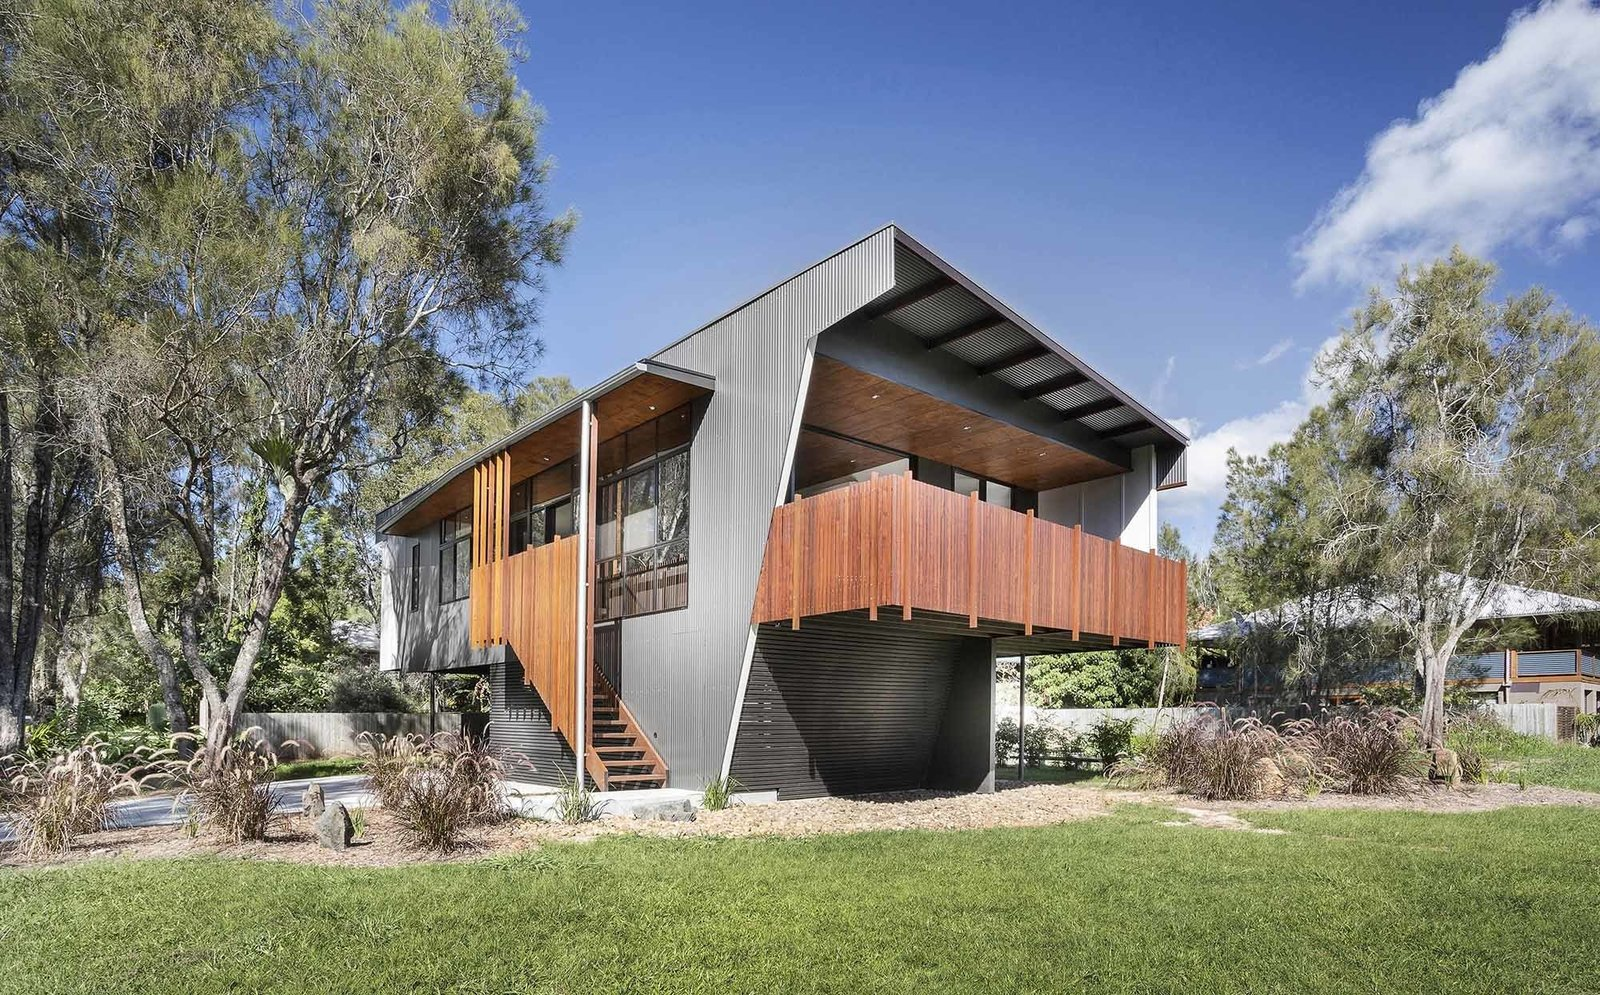 """The architects' inventive use of resources helped keep costs down. """"We gave the facade's ribbed metal cladding, commonly used in neighboring beach shacks, a metallic finish that provided a cost-effective solution and an upscale appearance,"""" Rathmayr says. Tagged: Outdoor, Back Yard, and Grass.  Northern Rivers Beach House by Tiffany Jow"""